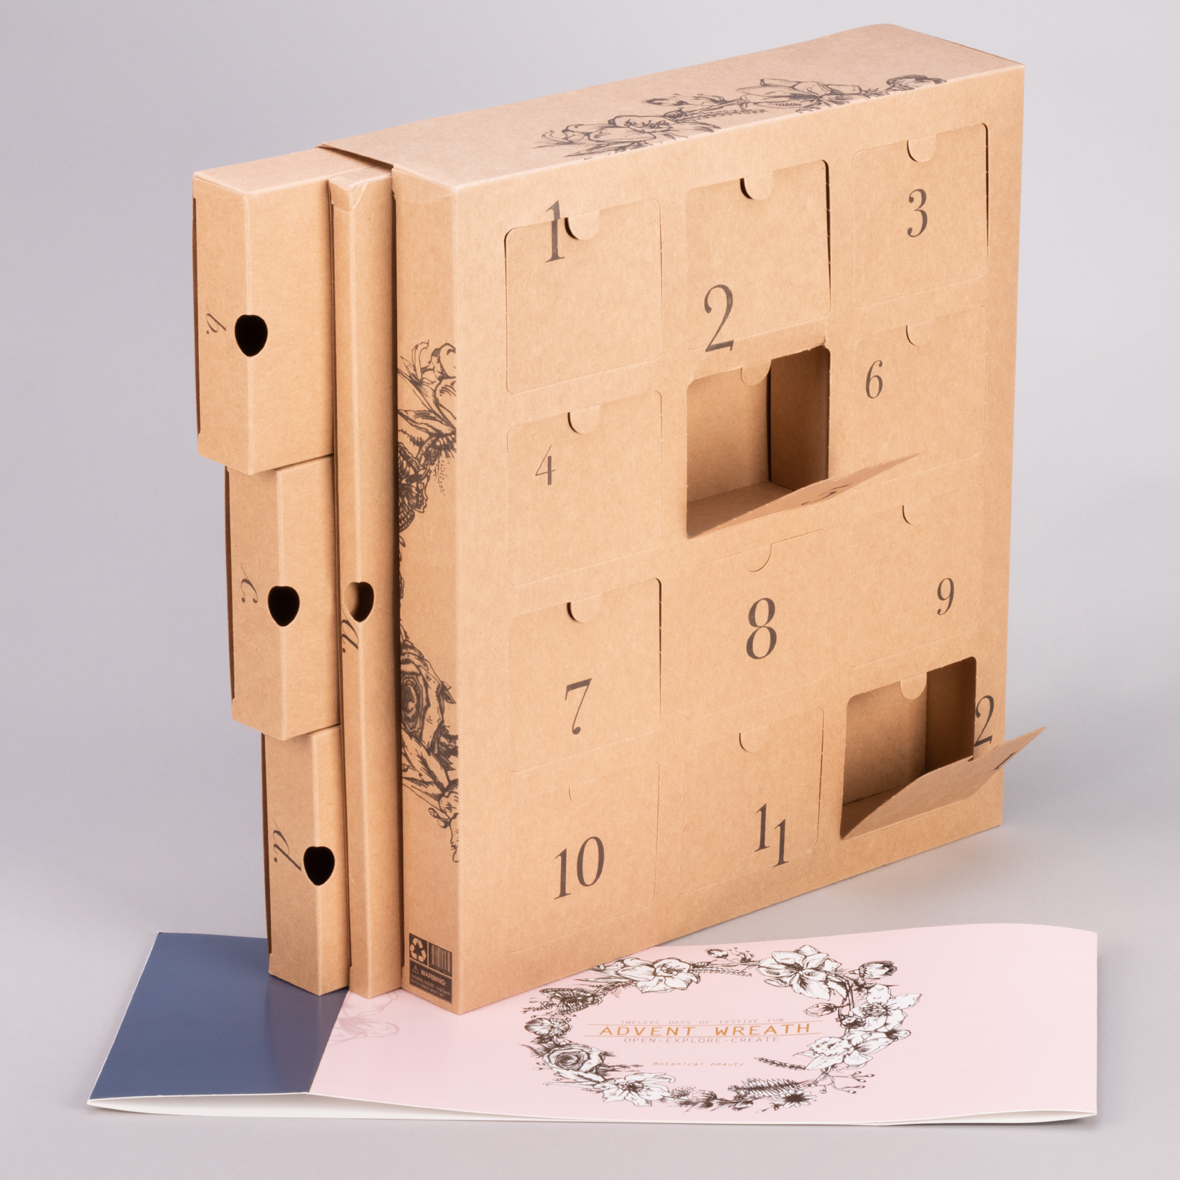 Advent Calendar with drawers